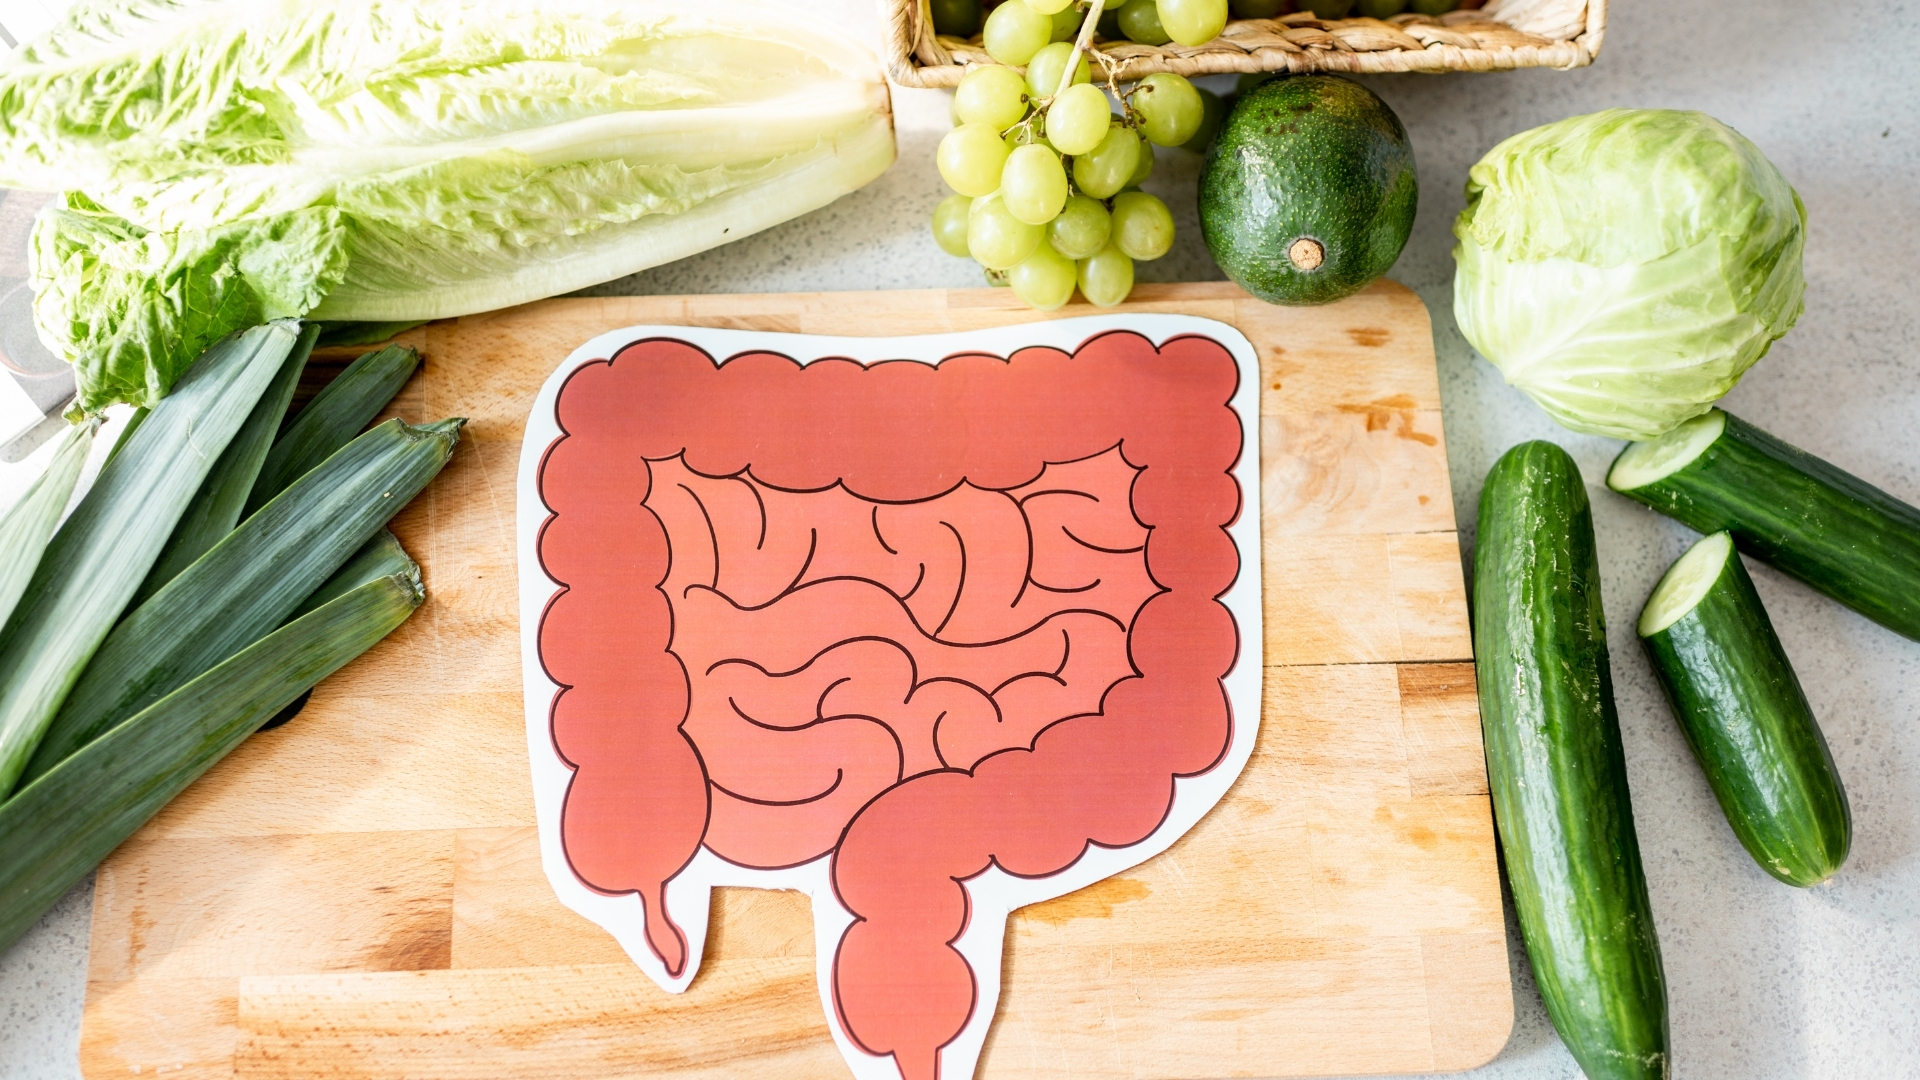 A cutout drawing of an intestine surrounded by vegetables